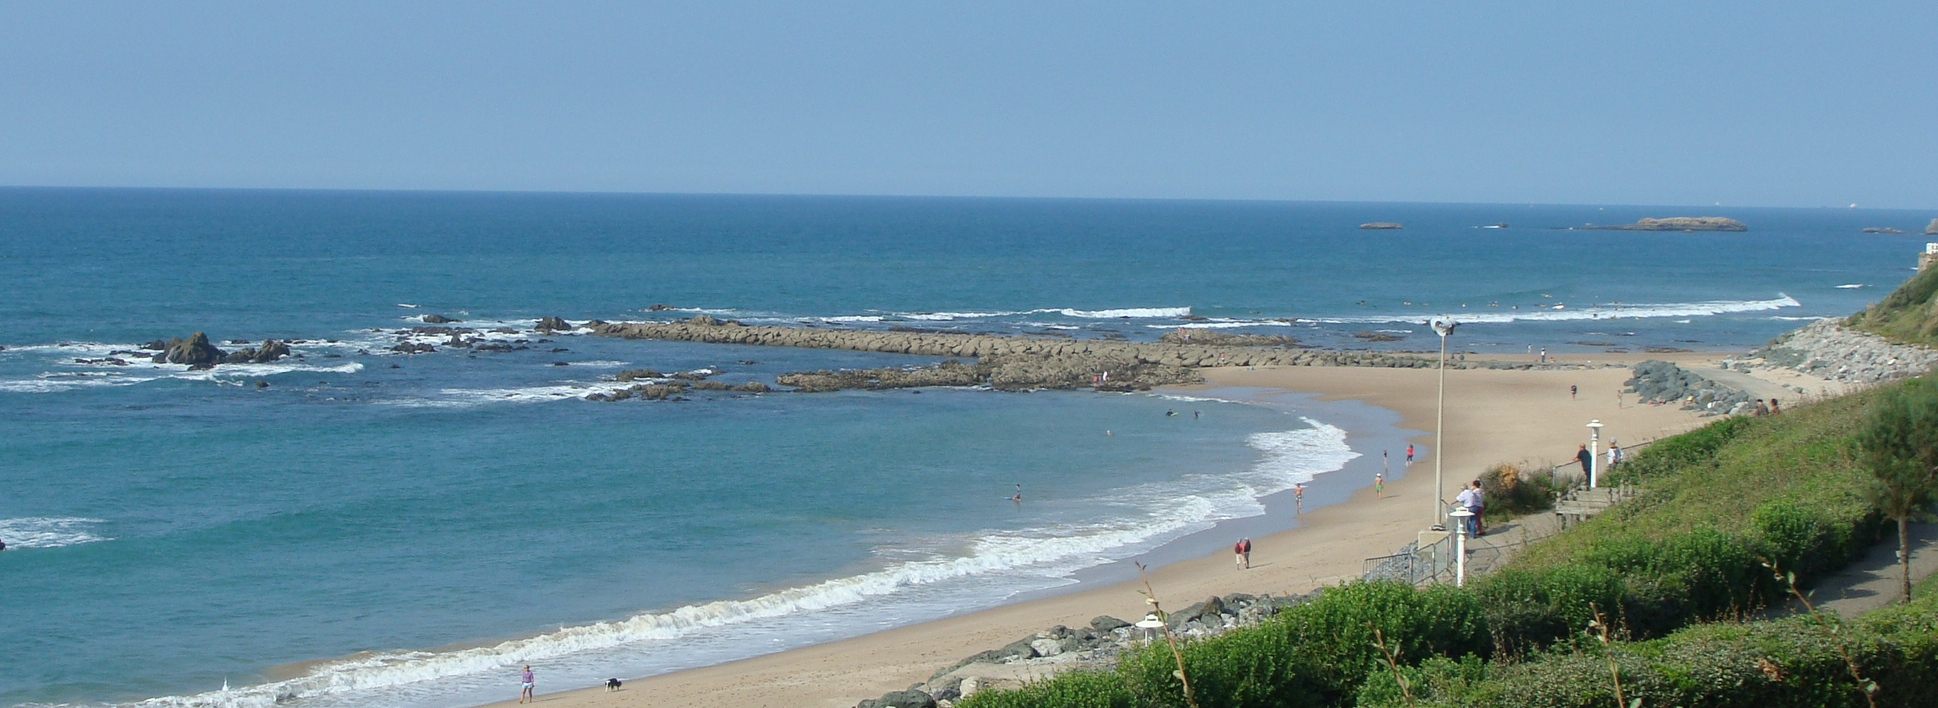 A vendre biarritz vue mer milady ilbarritz ref ip pb 227 pays basque immobilier luxe prestige - Chambre hote biarritz vue mer ...